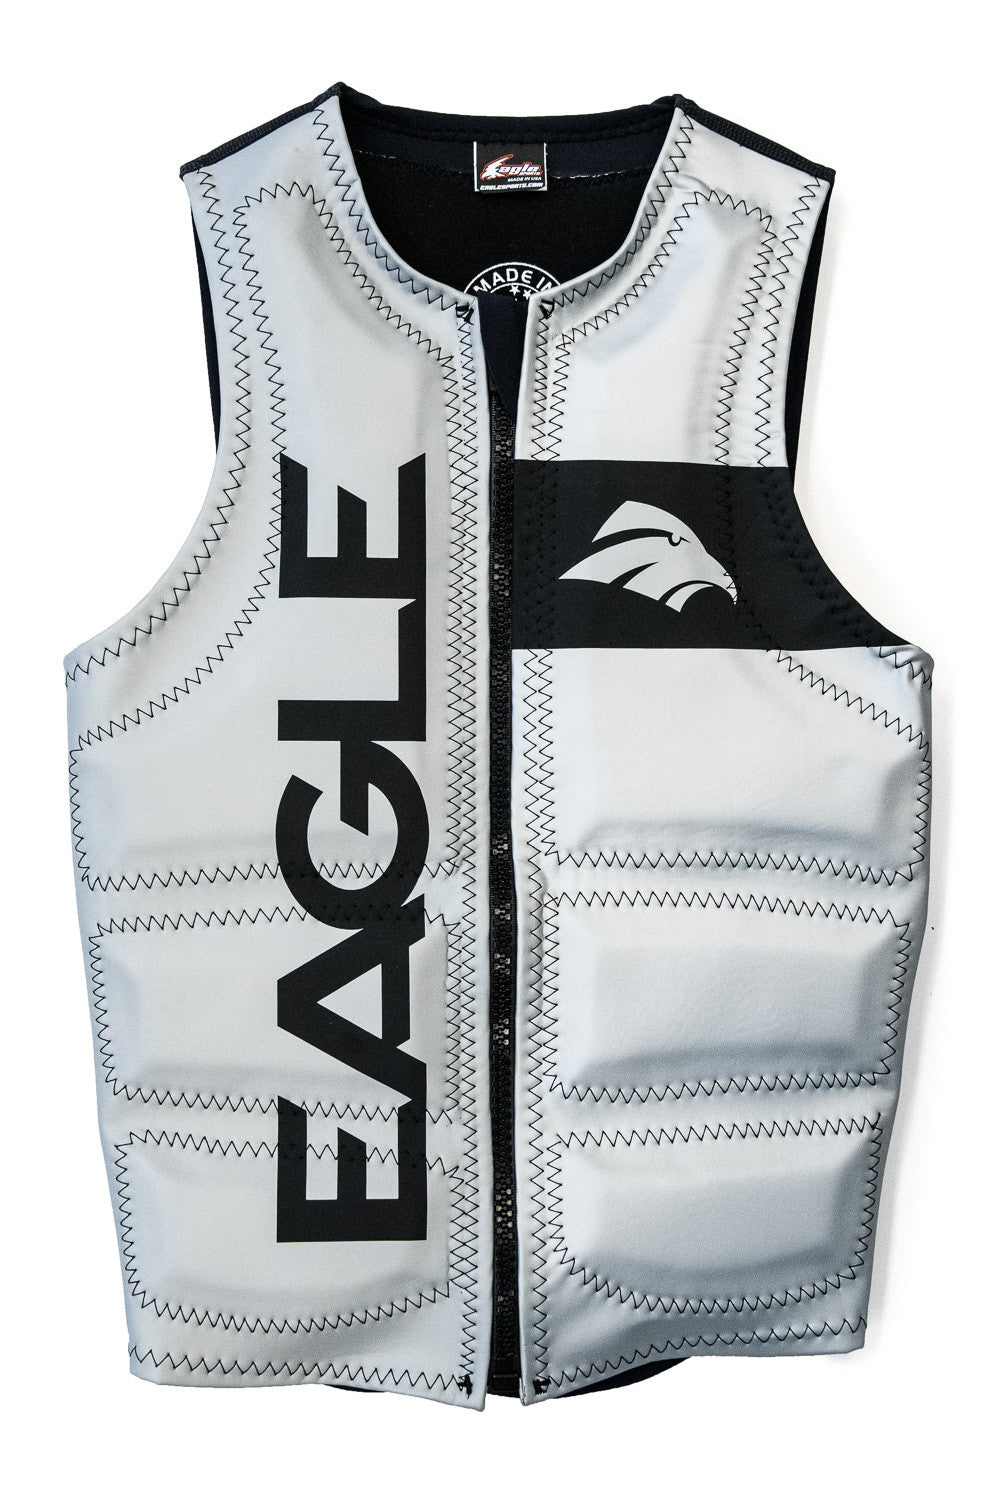 Masterline | Eagle Platinum Vest | Eagle Mens Waterski Vest, Water ski accessories